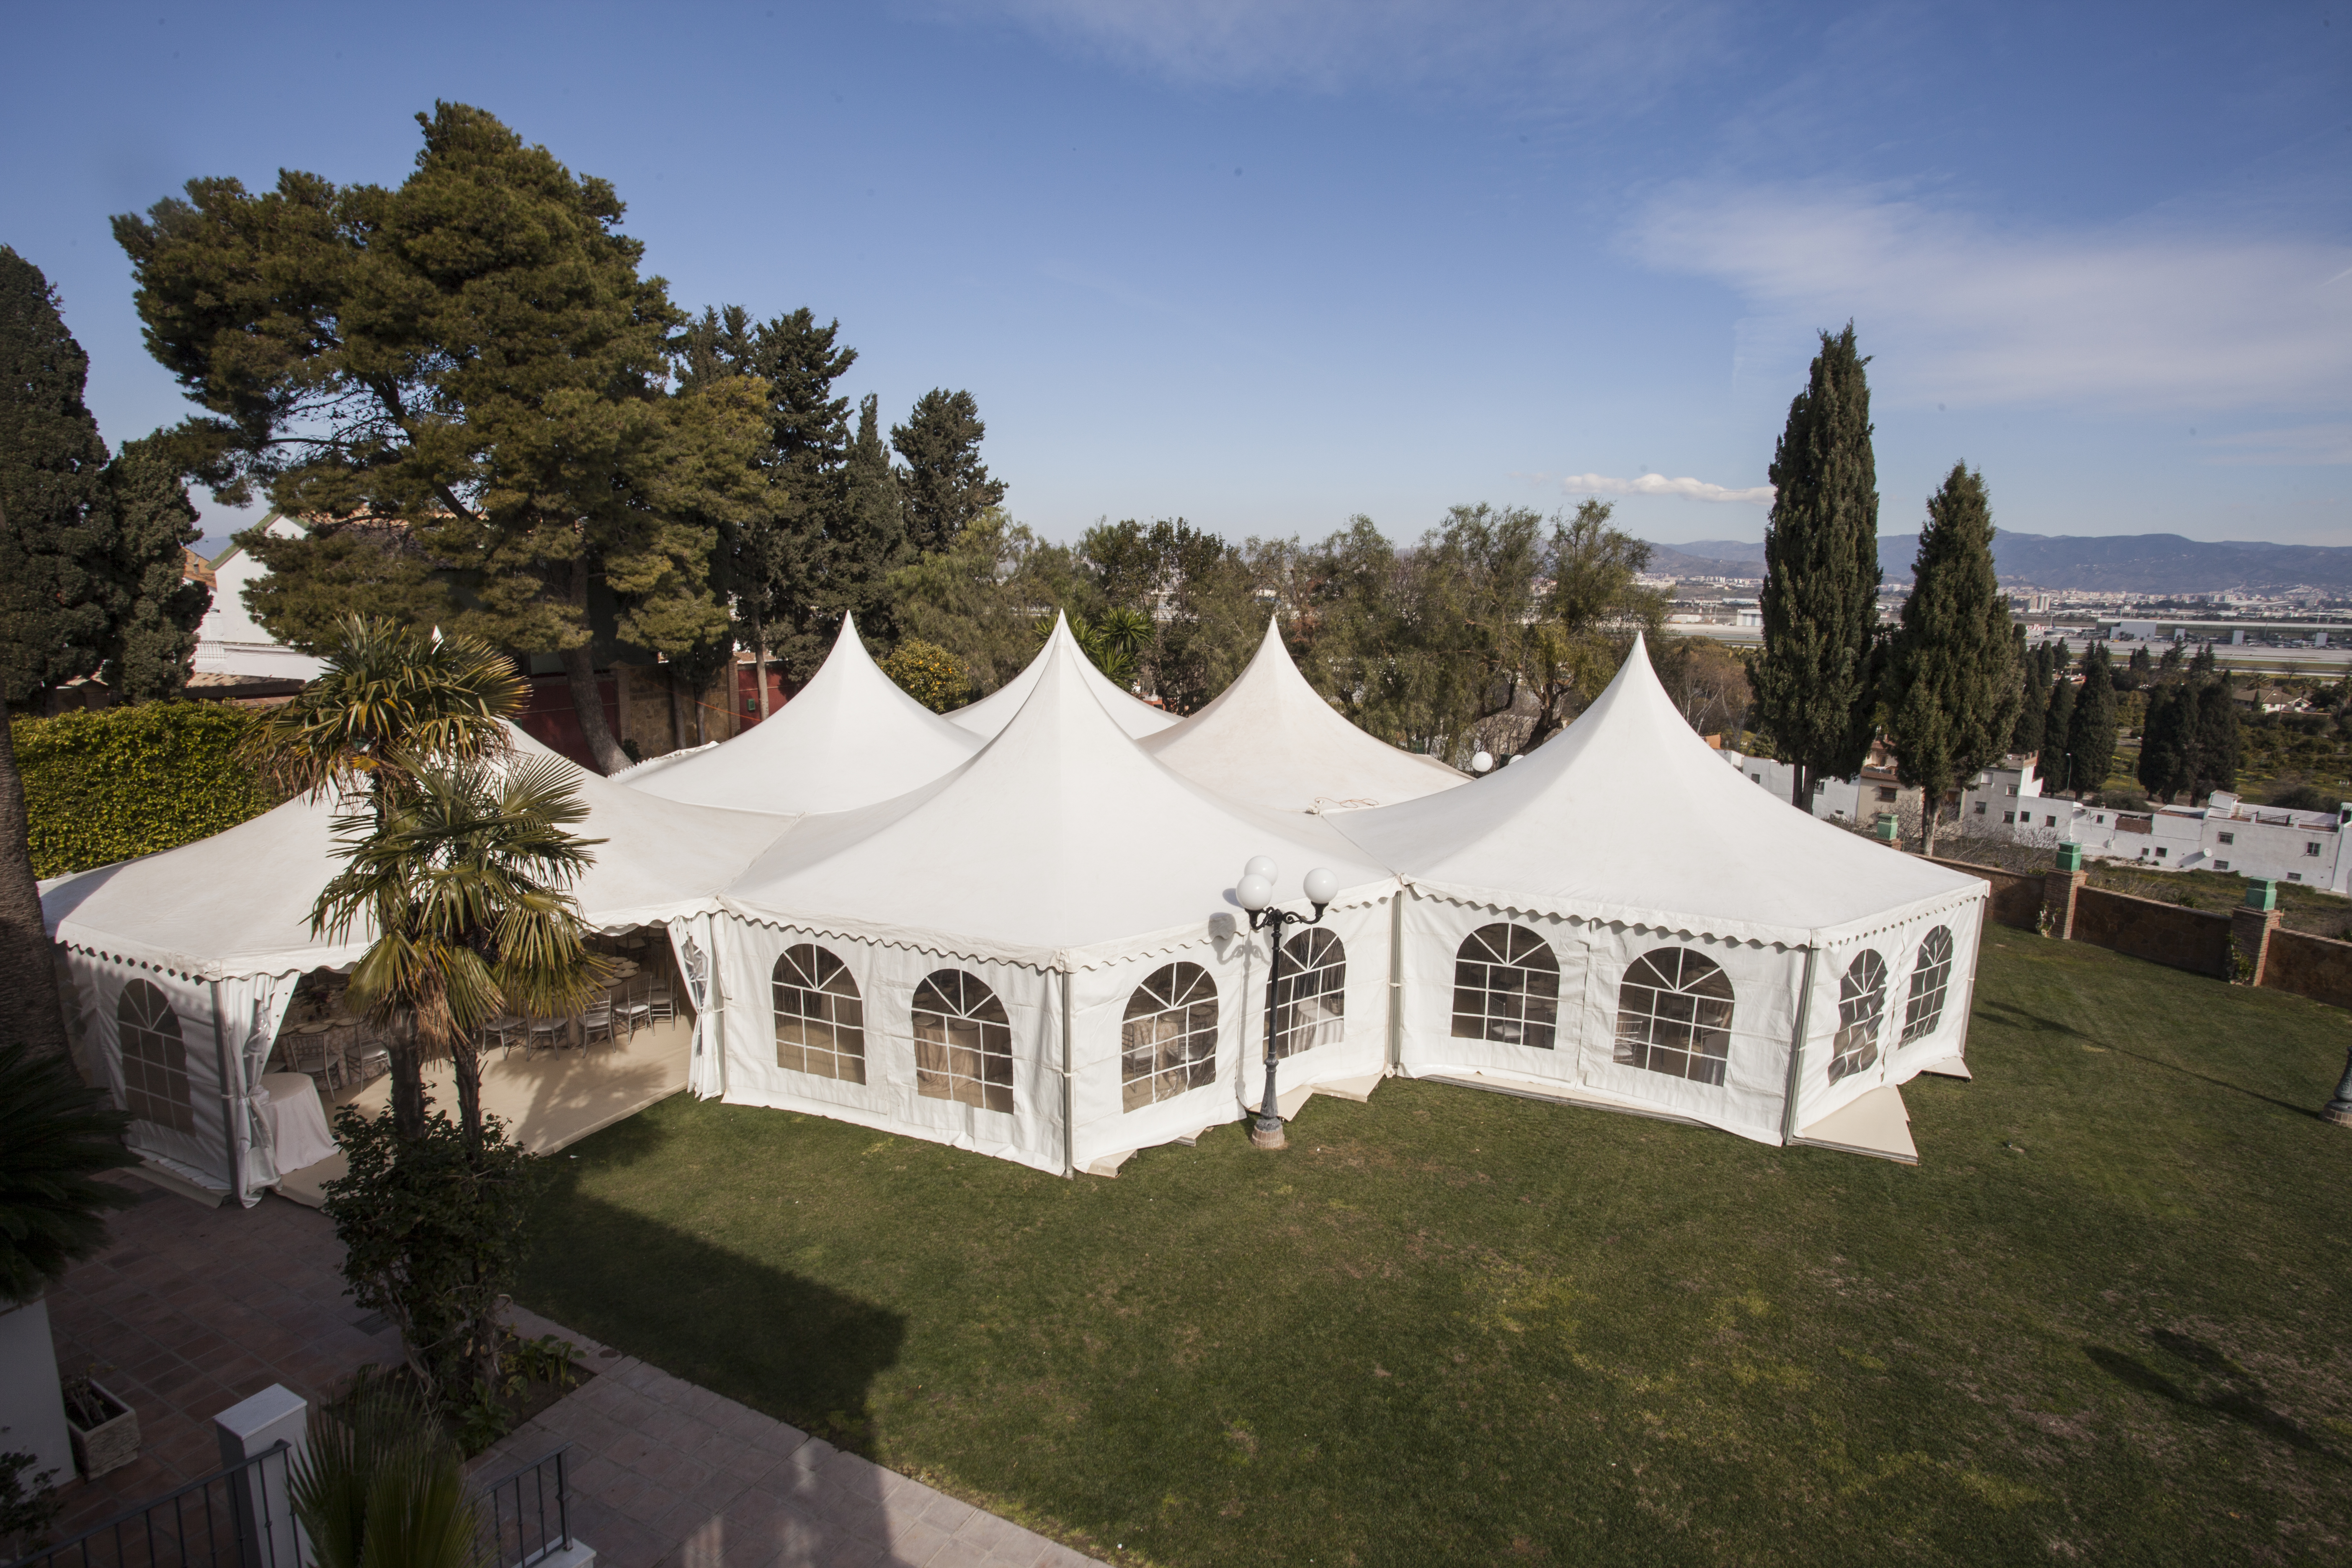 The elegant white domes of a wedding tent